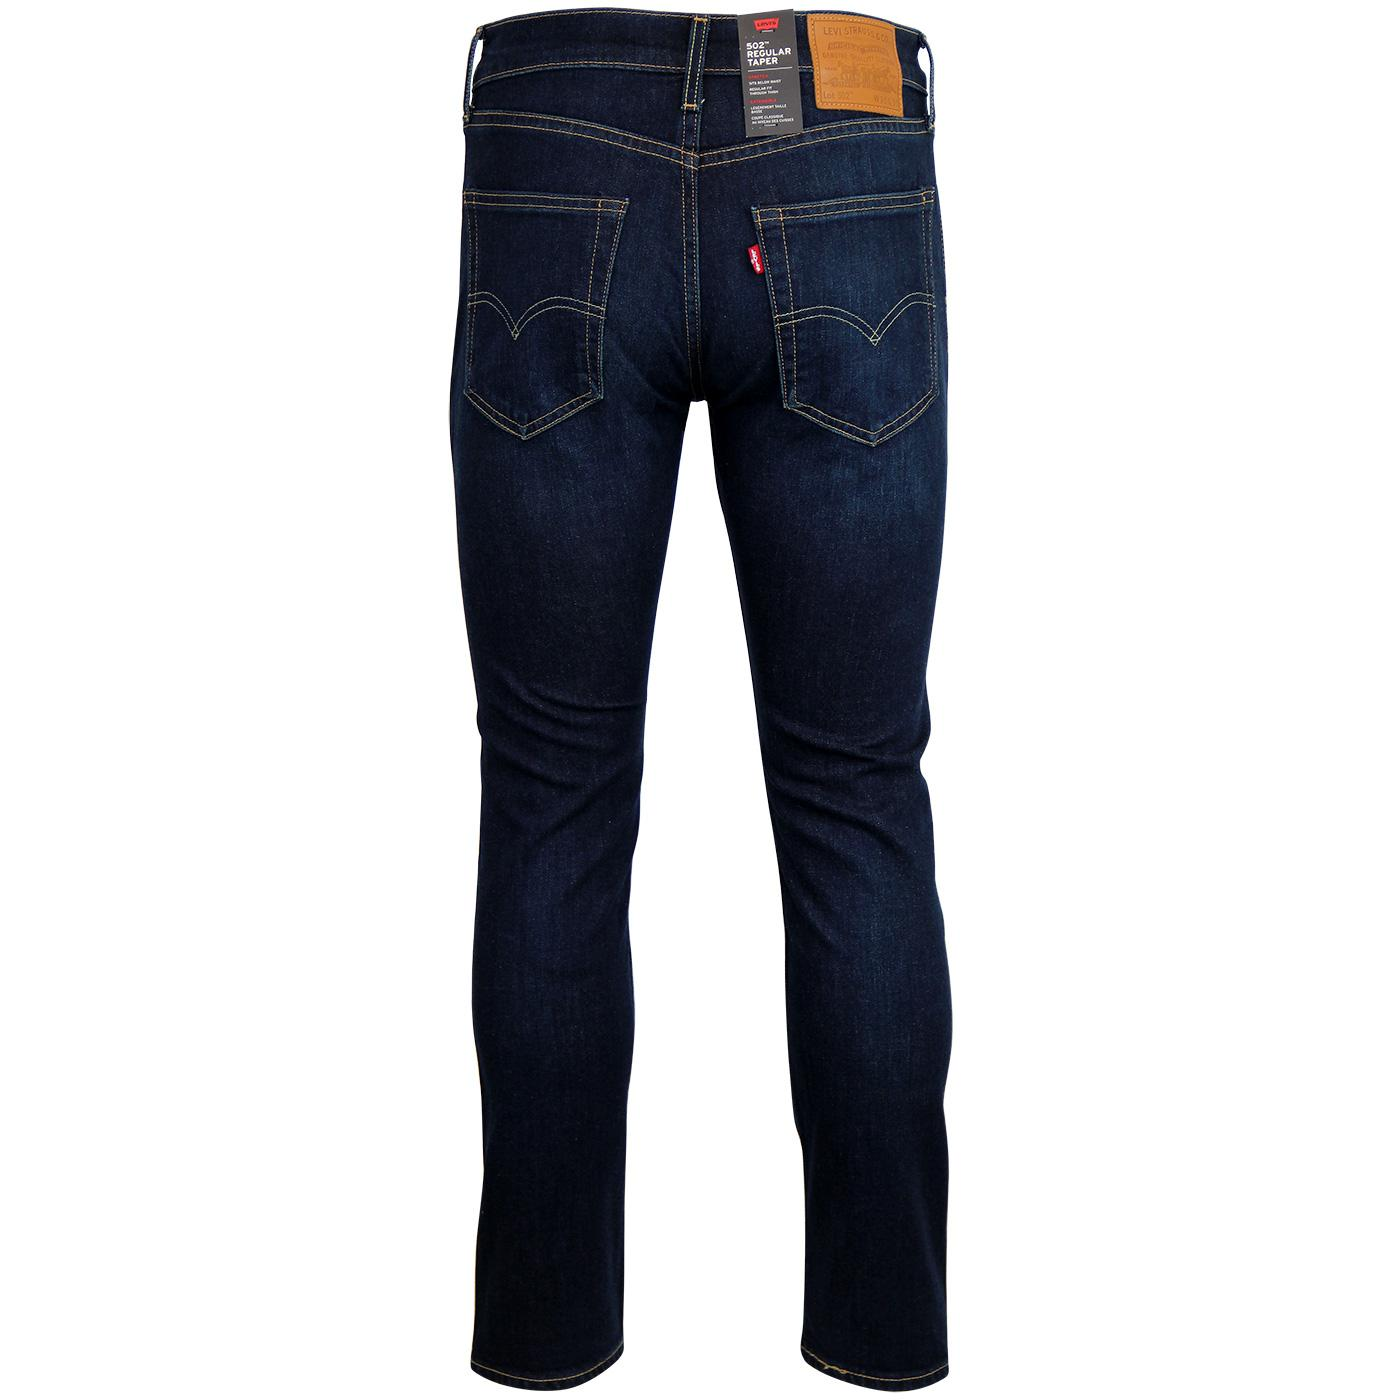 af4db04246d LEVI'S 502 Regular Tapered Mod Denim Jeans in Biology